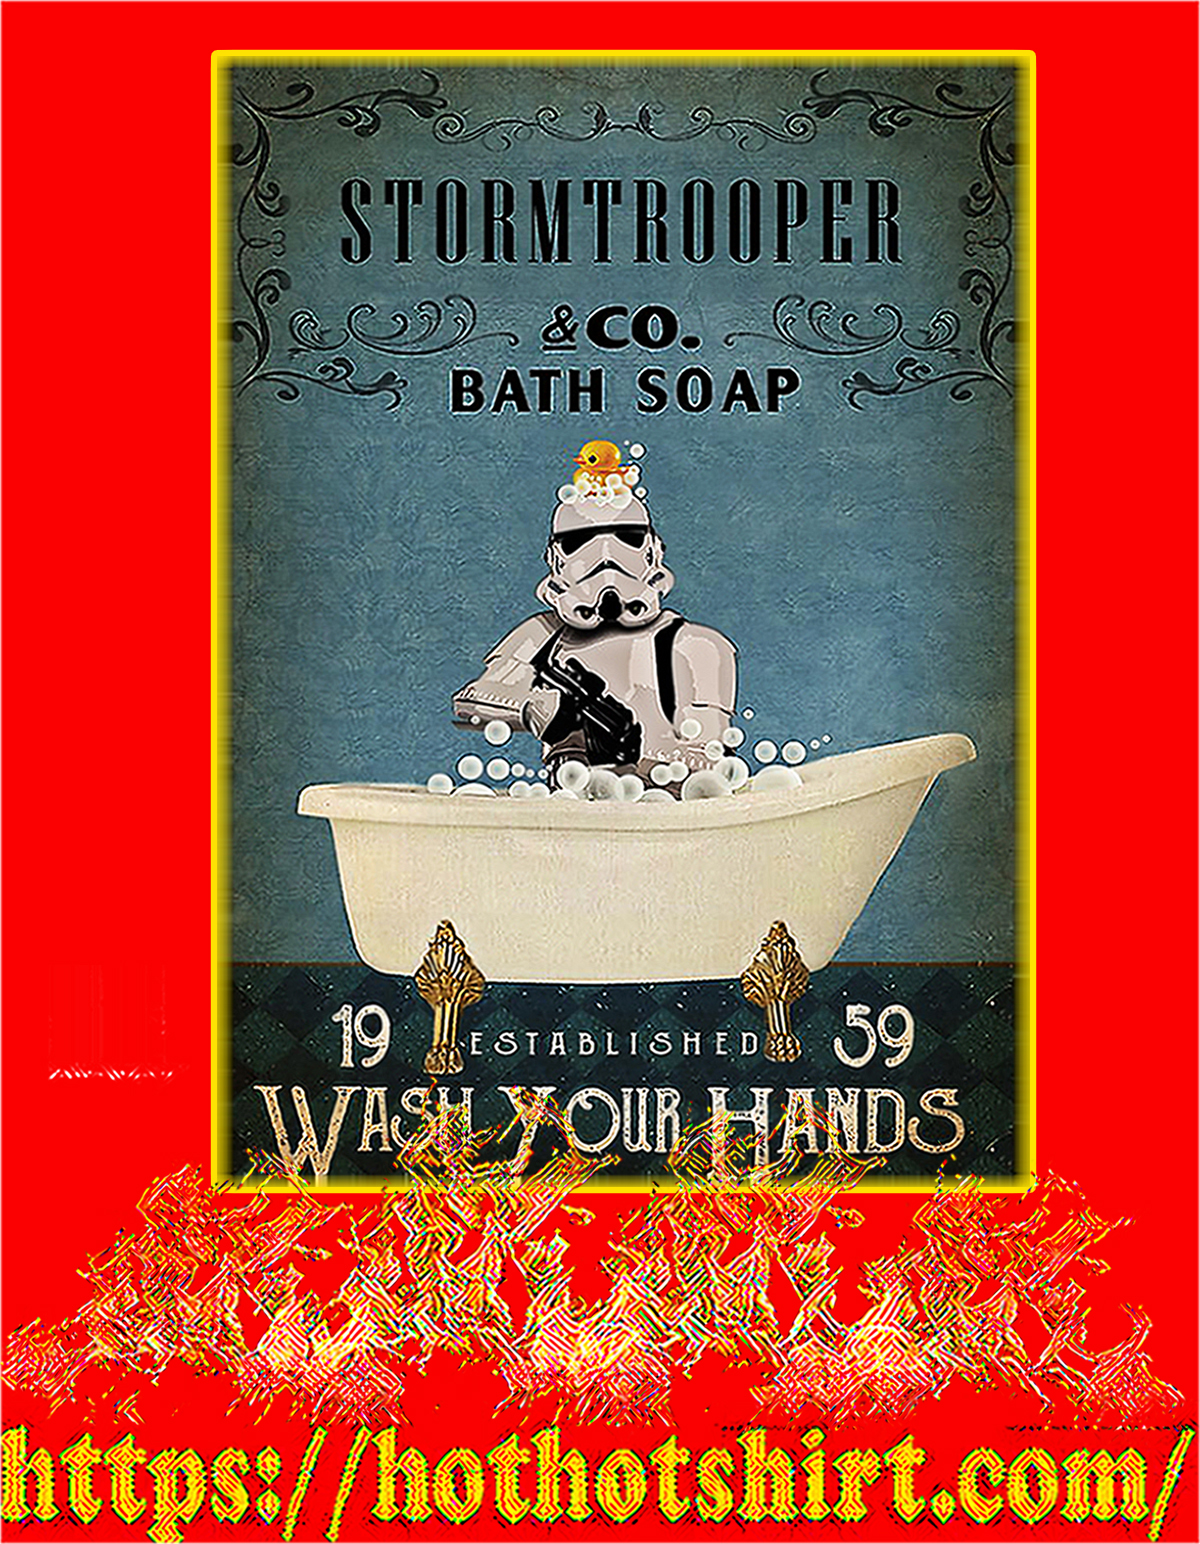 Stormtrooper co bath soap wash your hands poster - A4